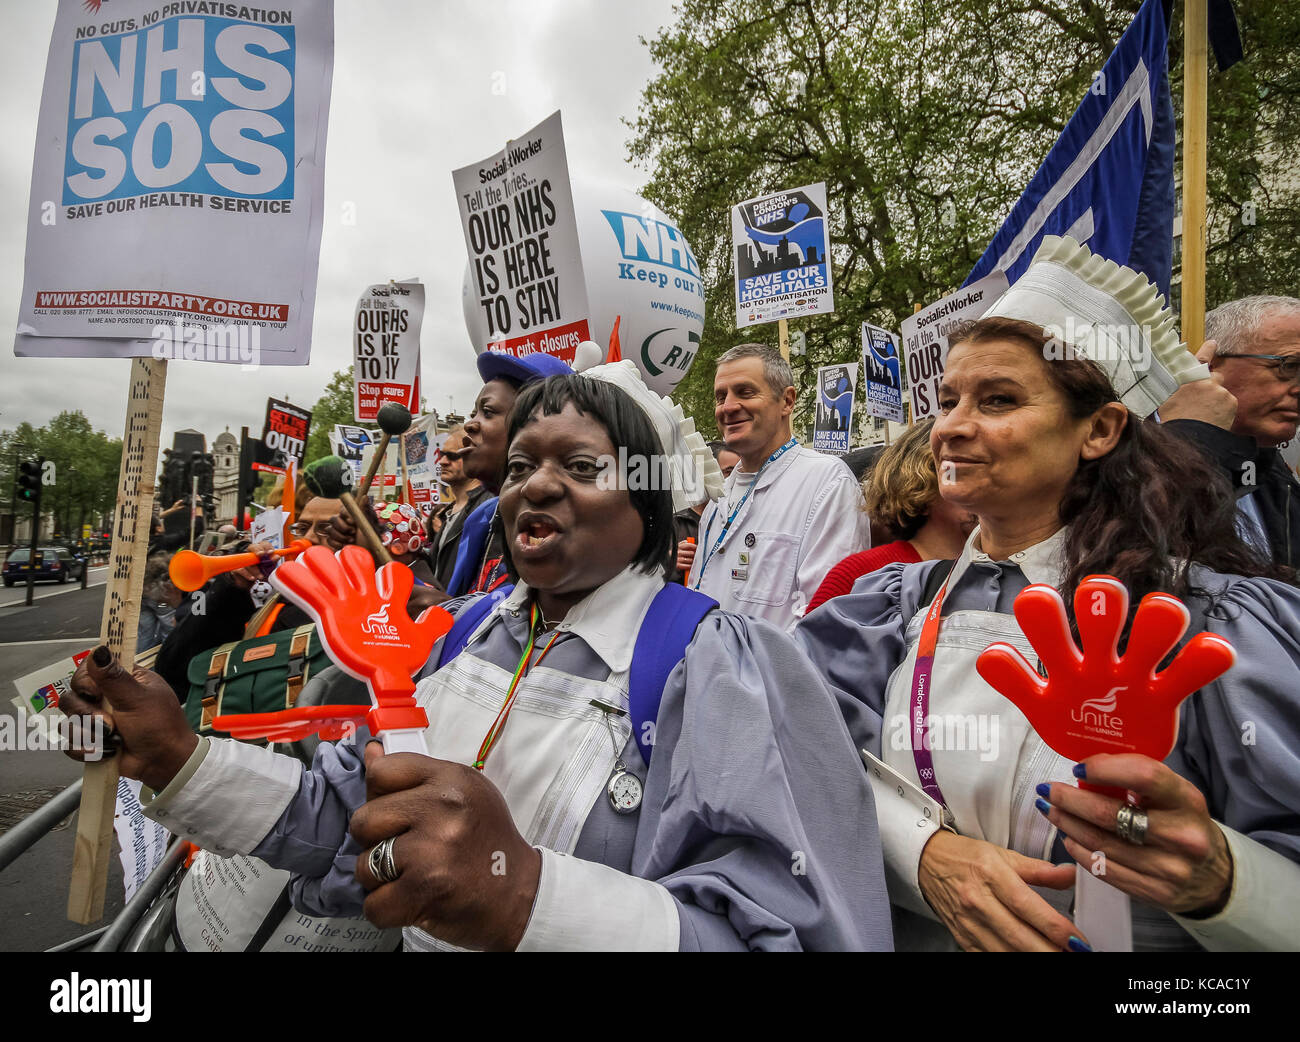 Protesters march and rally over NHS reforms. London, UK. - Stock Image